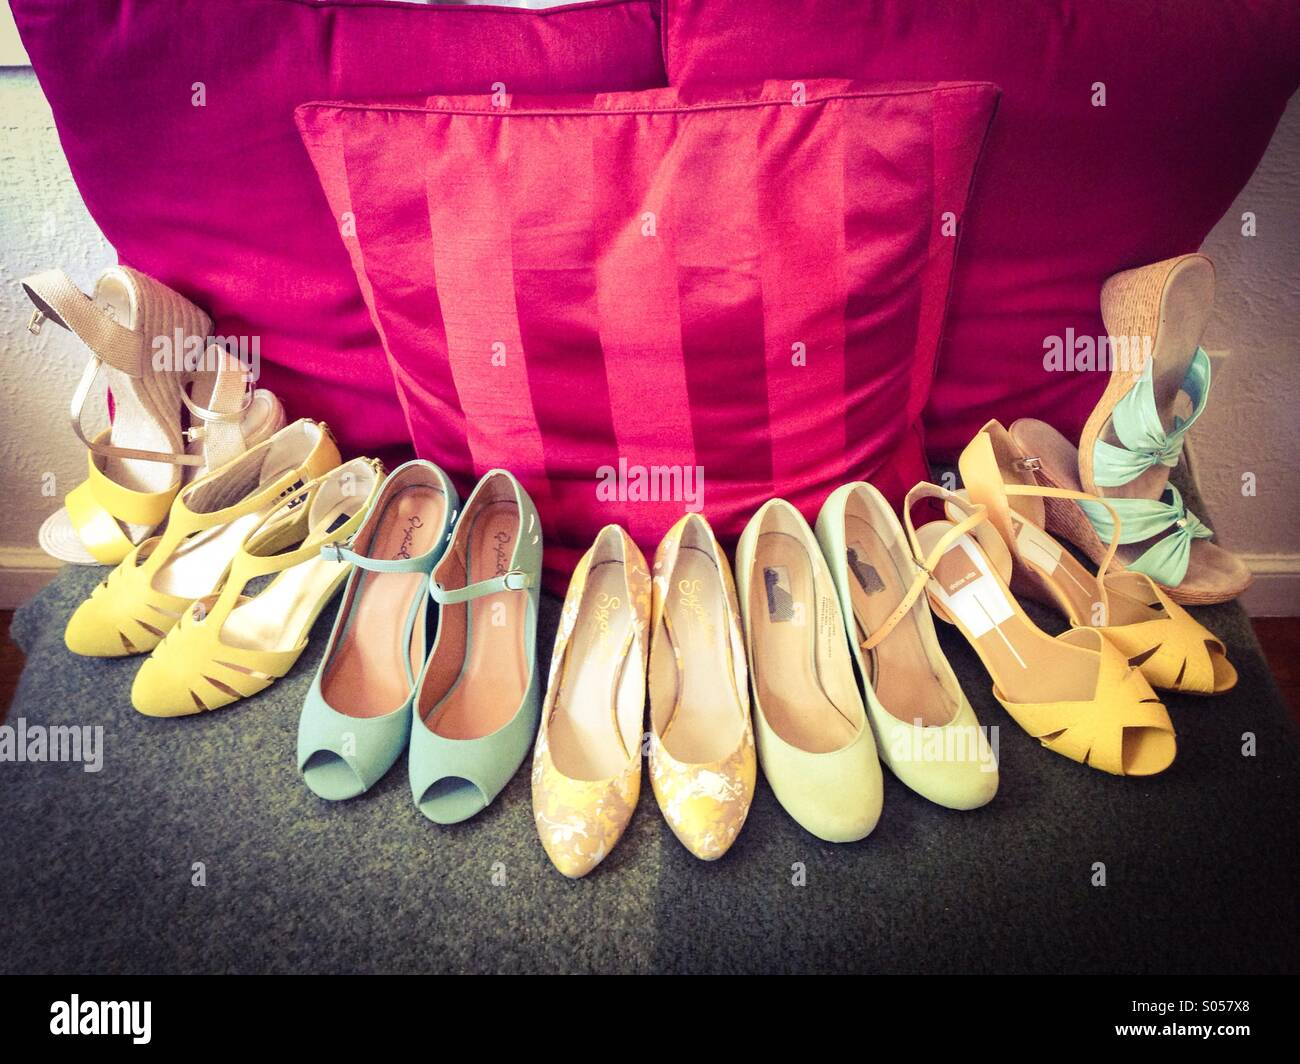 All the bridesmaids shoes. Stock Photo